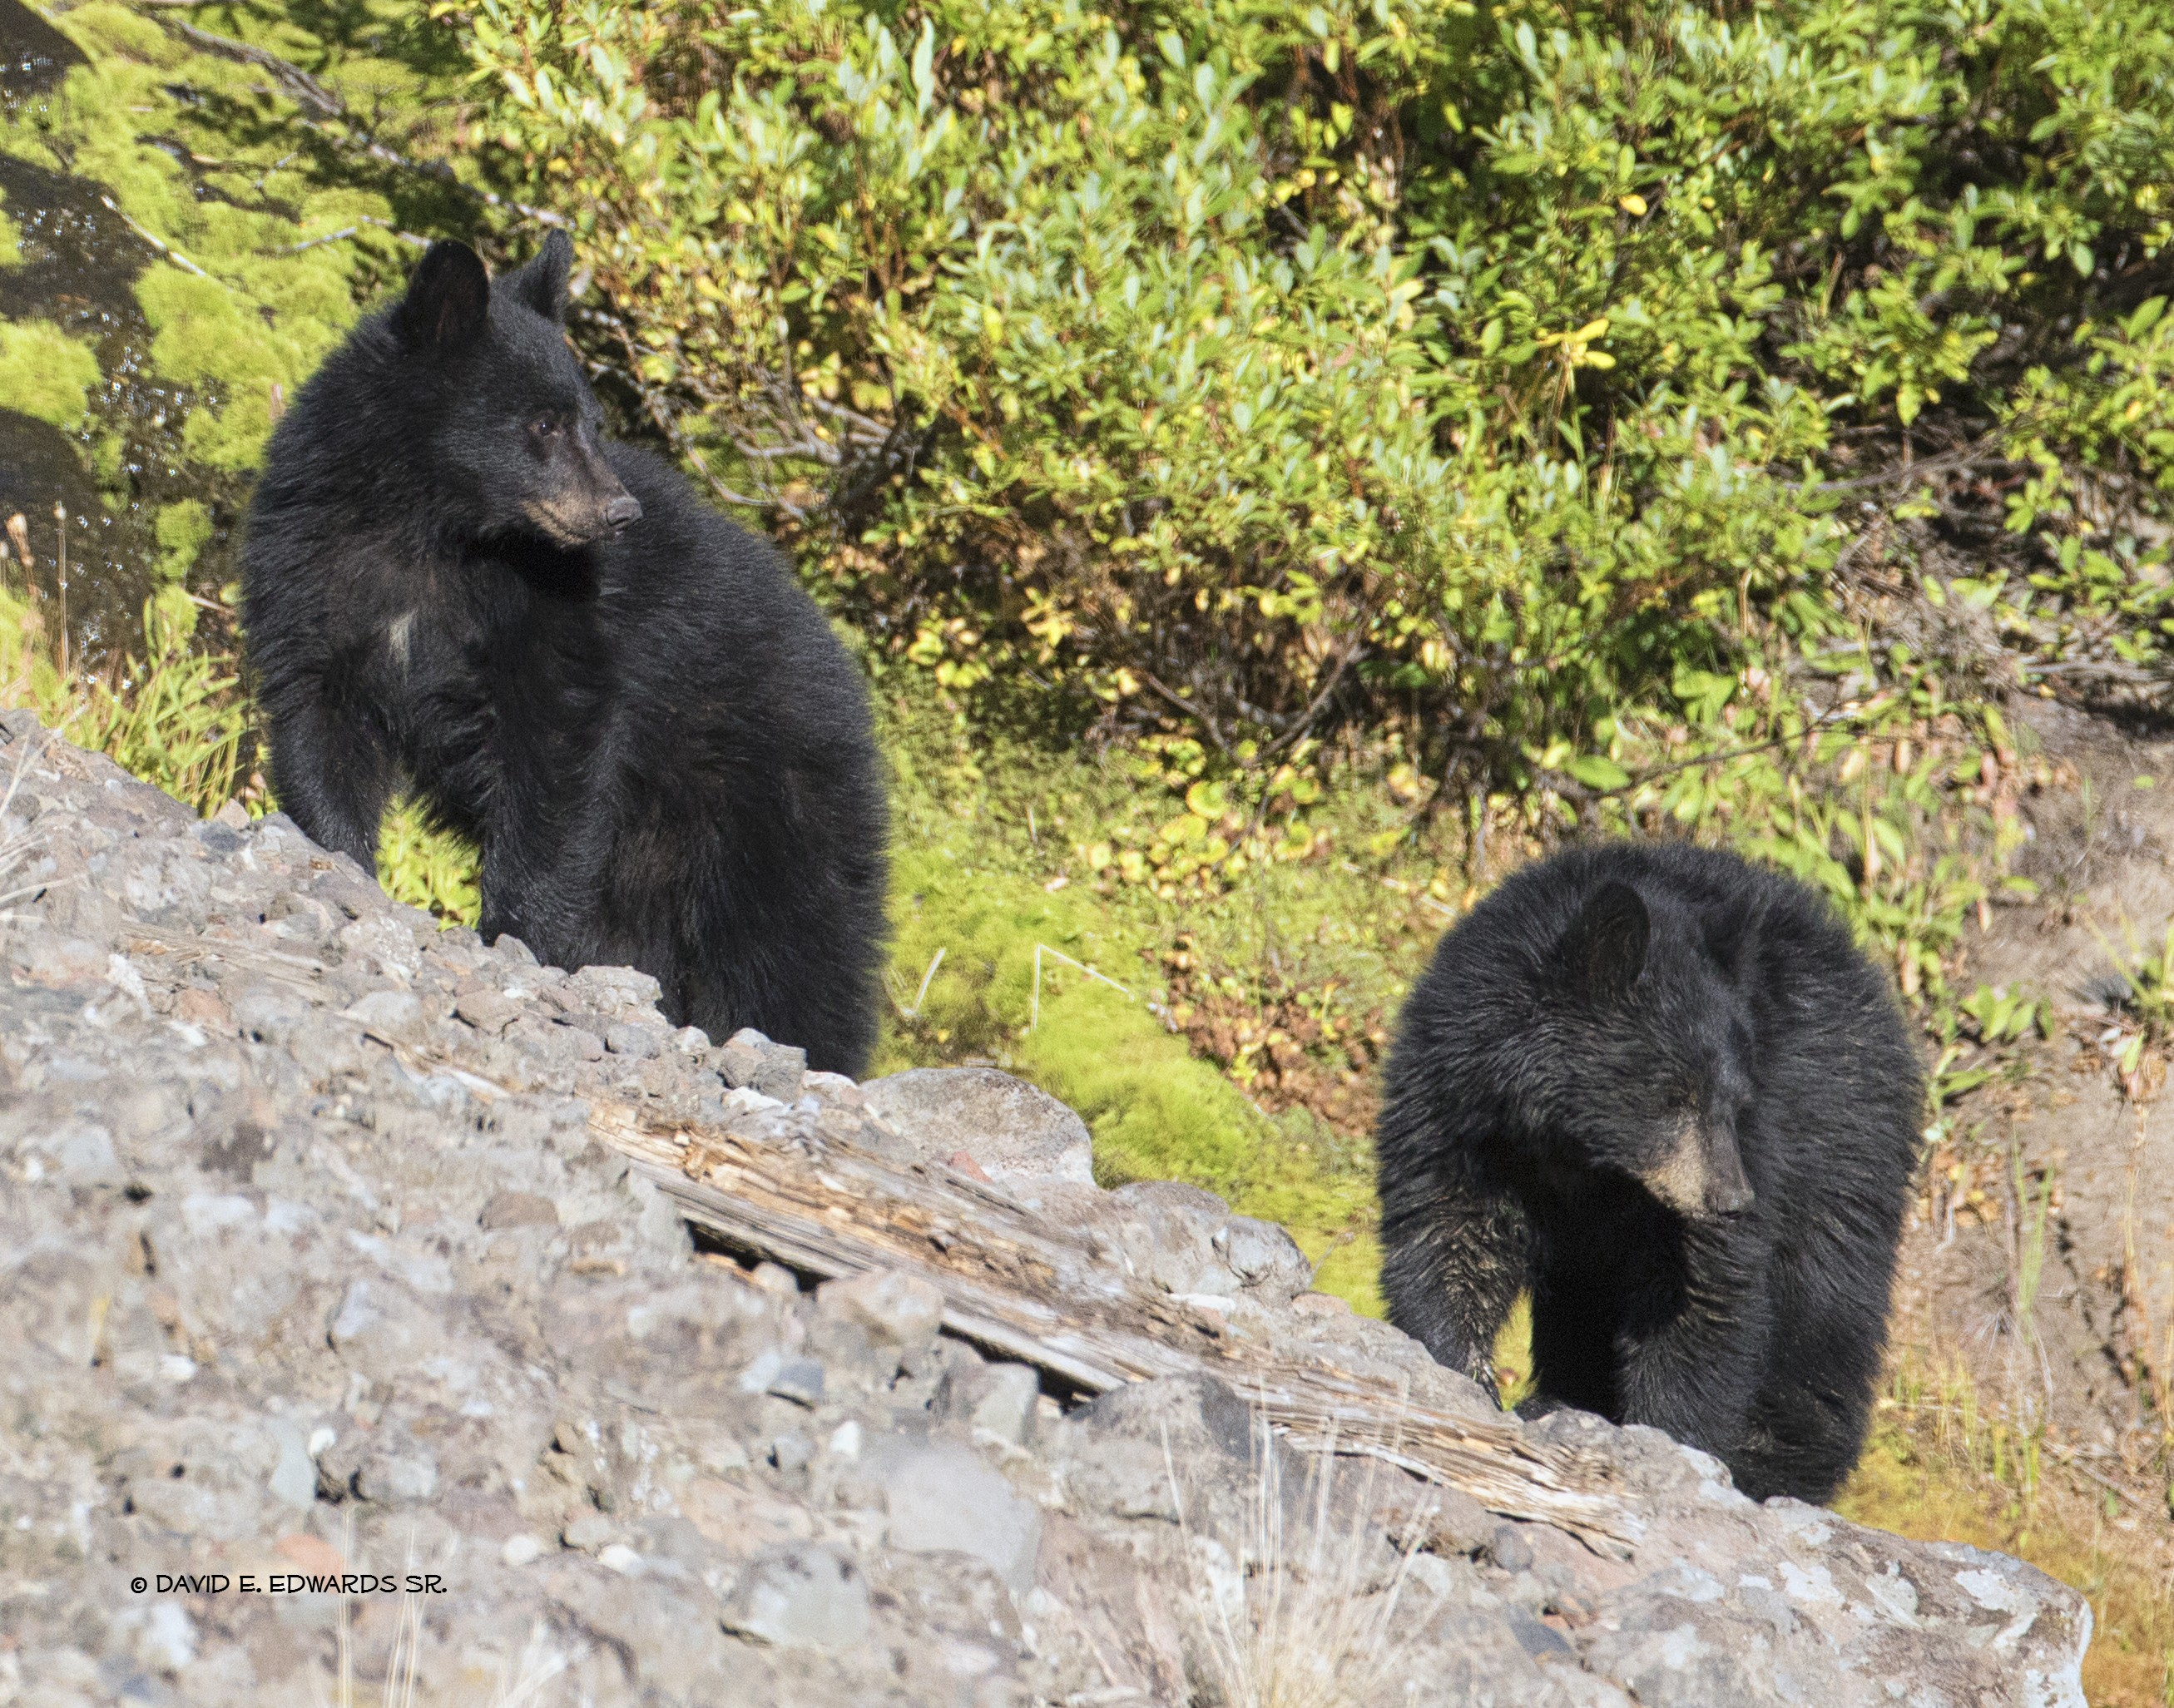 Sibling Black Bears